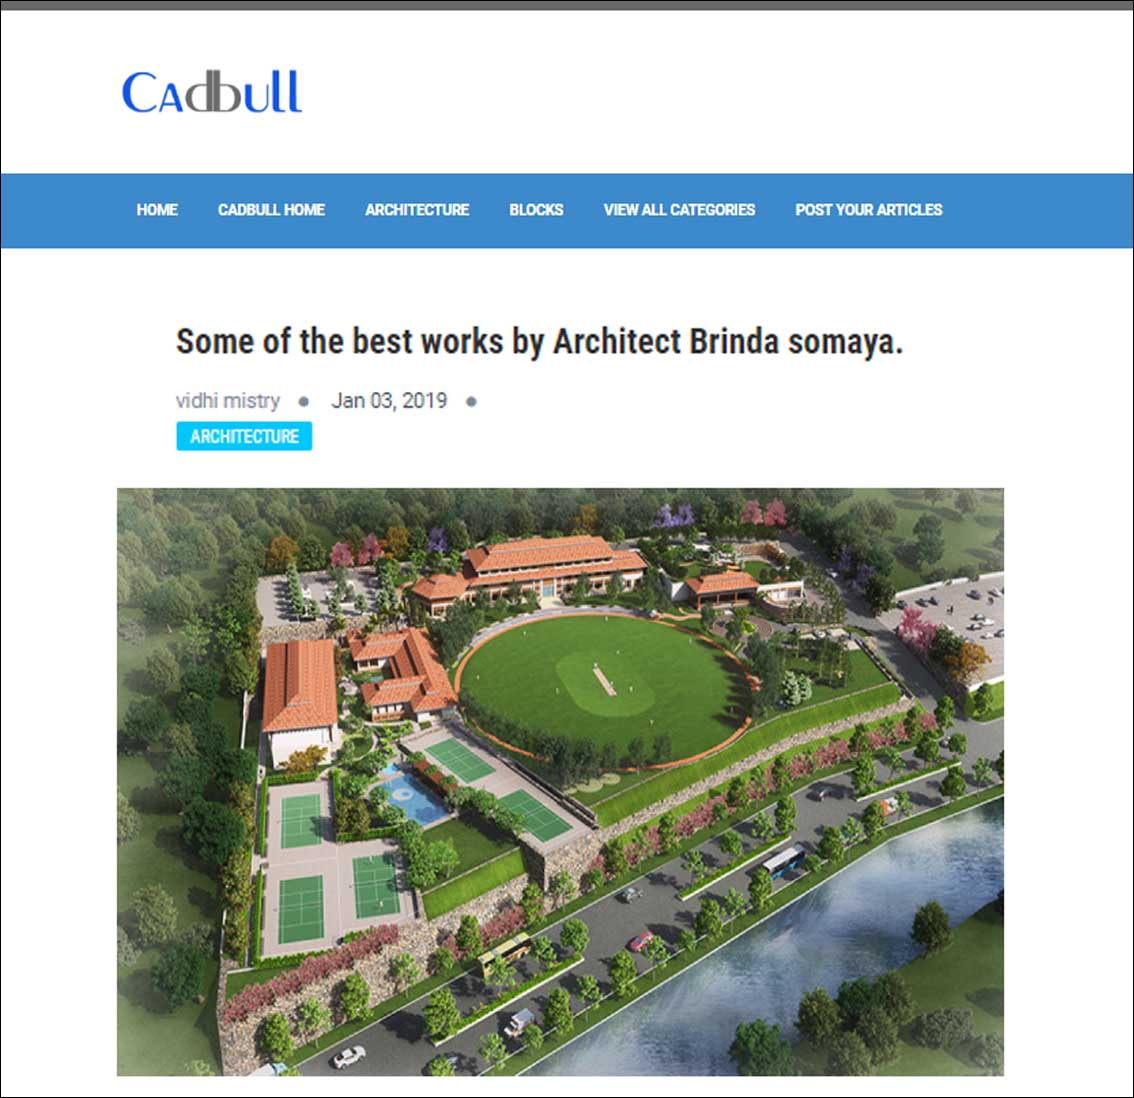 Some of the Best works by Architect Brinda Somaya, Cadbull - January 2019